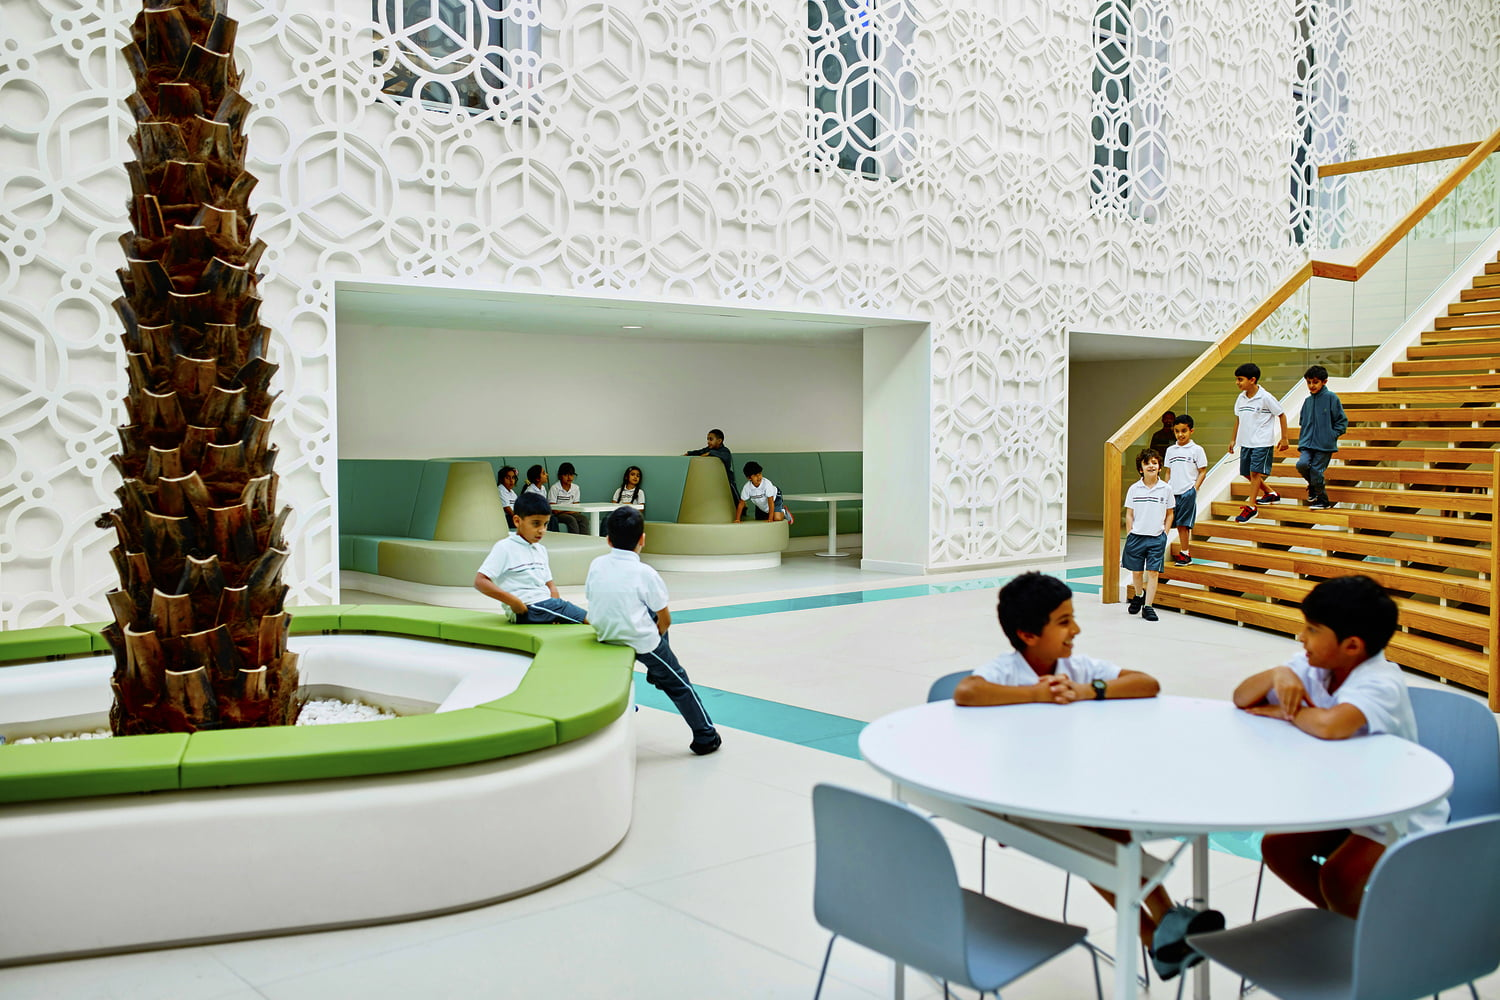 Photograph showing an example of the beautifully designed and open areas for children at The Sheikh Zayed Private Academy for Boys